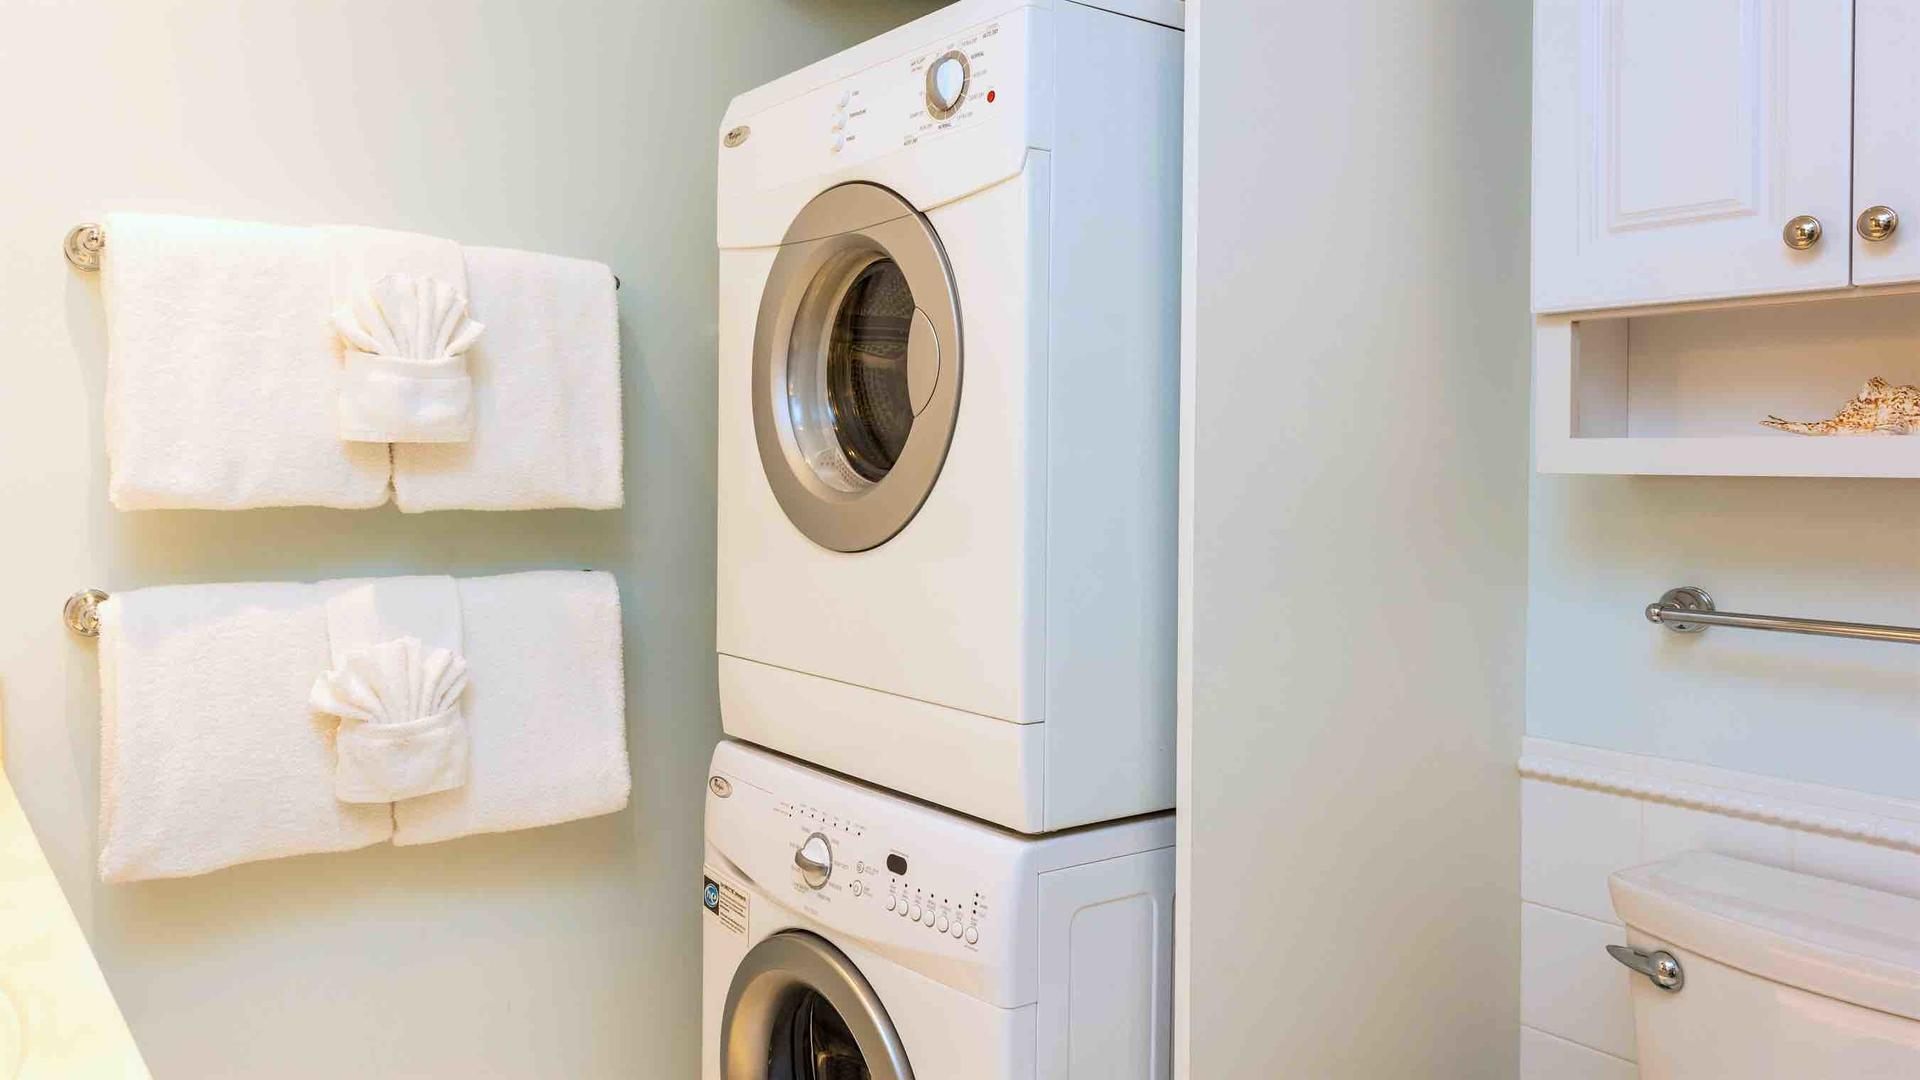 The washer and dryer are also located in the bathroom...